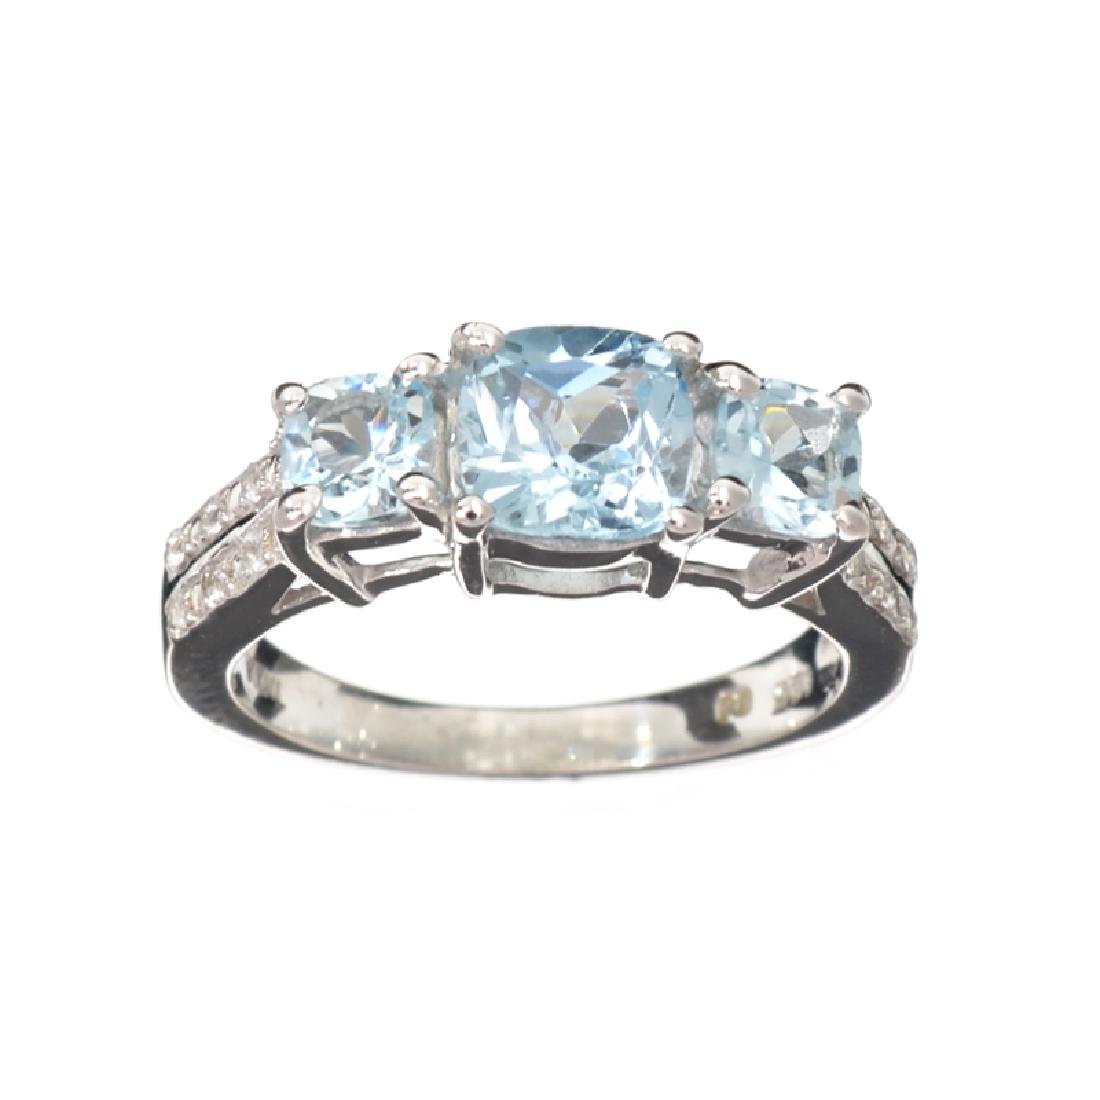 APP: 0.5k Fine Jewelry 1.82CT Topaz And White Sapphire